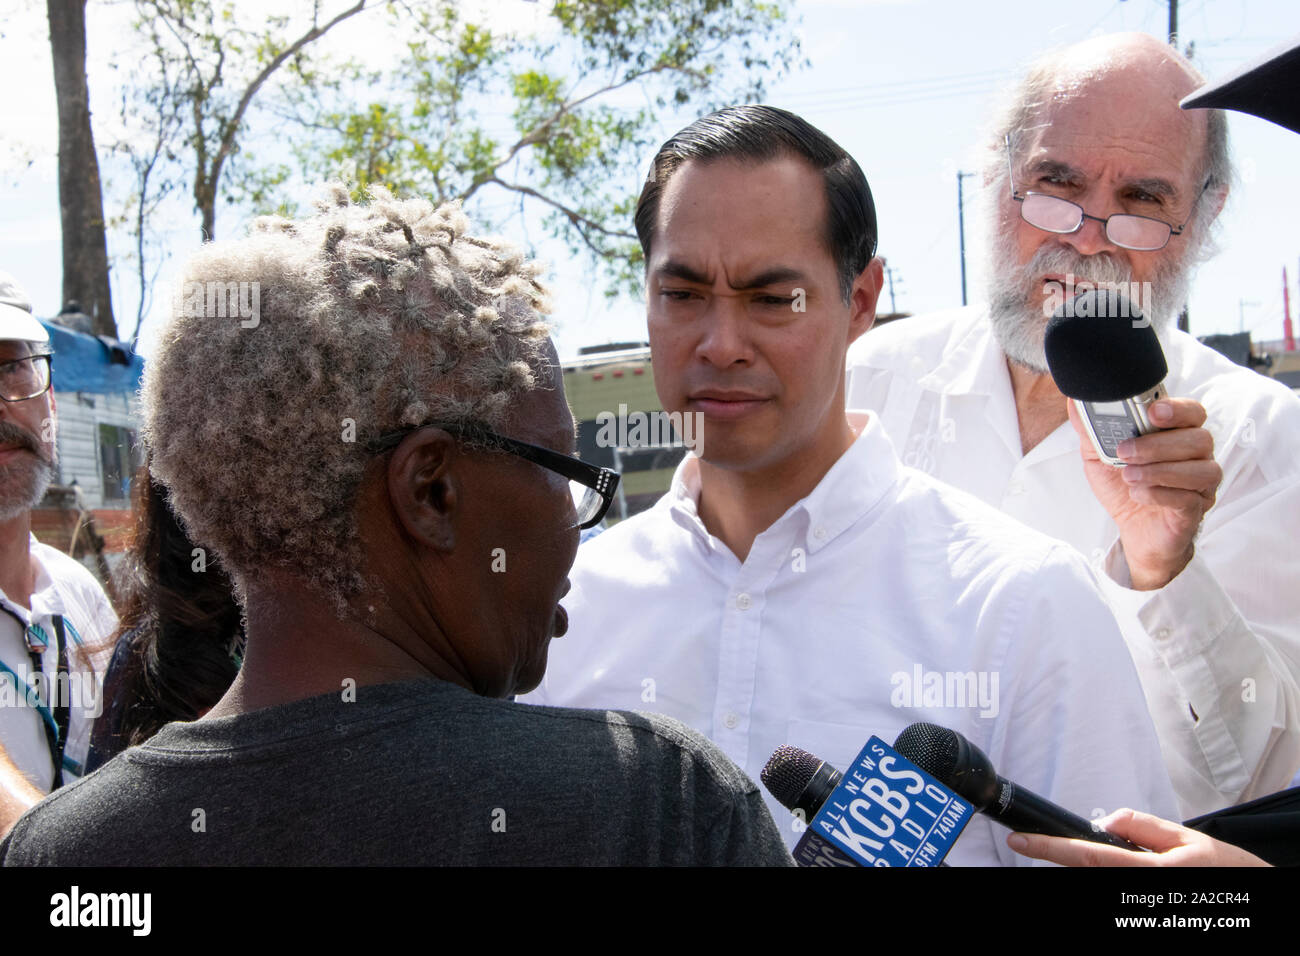 Democratic Presidential Candidate Julián Castro speaks to Elizabeth Easton, a resident of an Oakland homeless encampment, on Sept. 25. Stock Photo